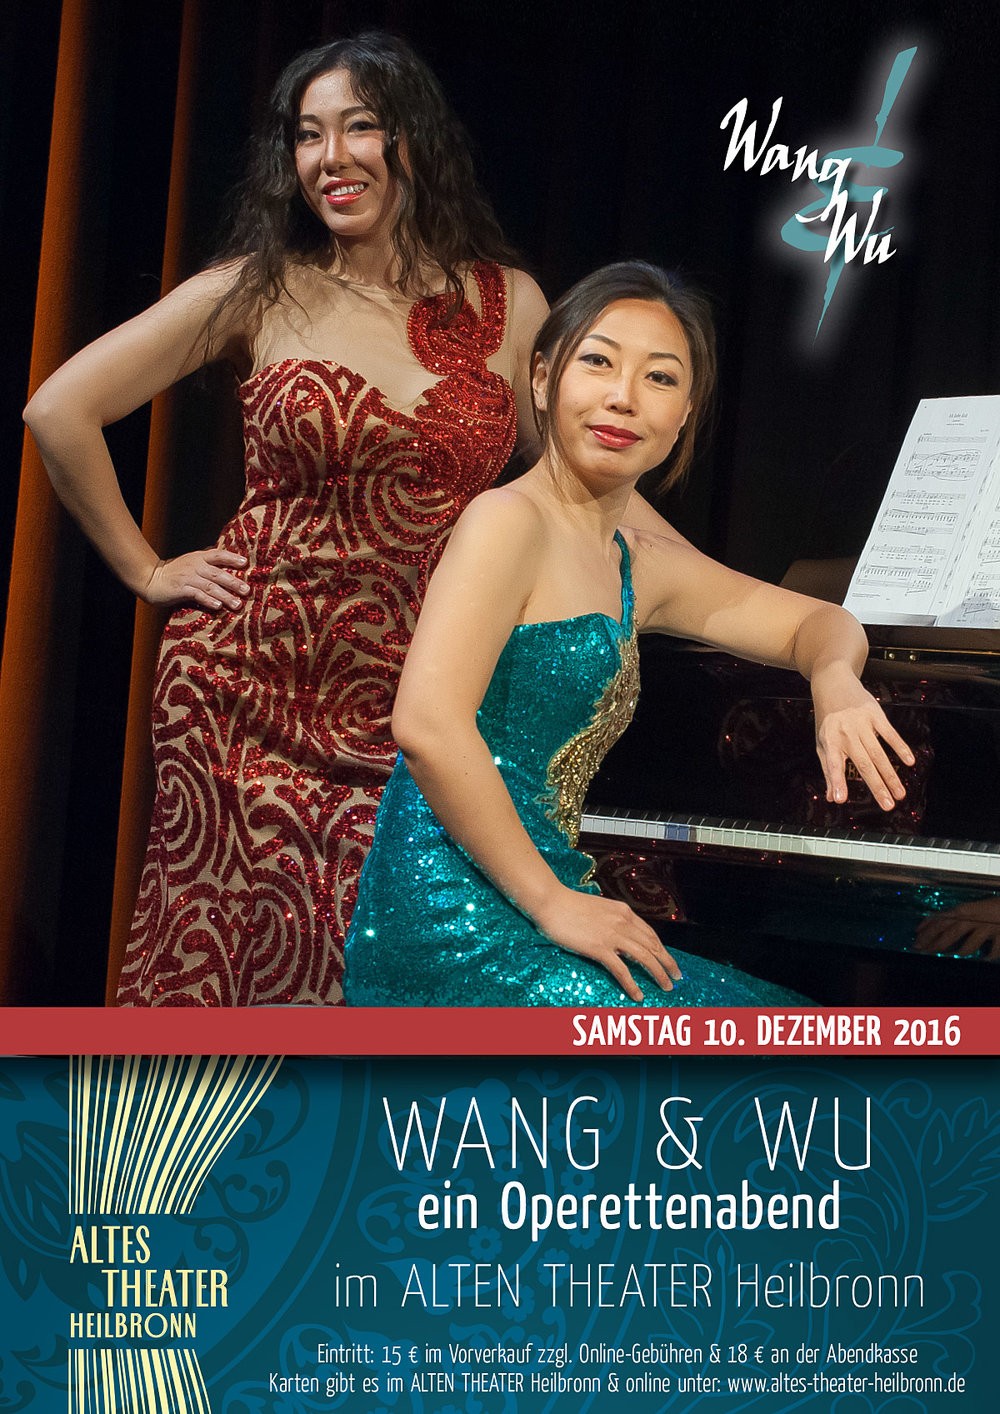 WANG-WU-Operette-ALTES-Theater-Heilbronn